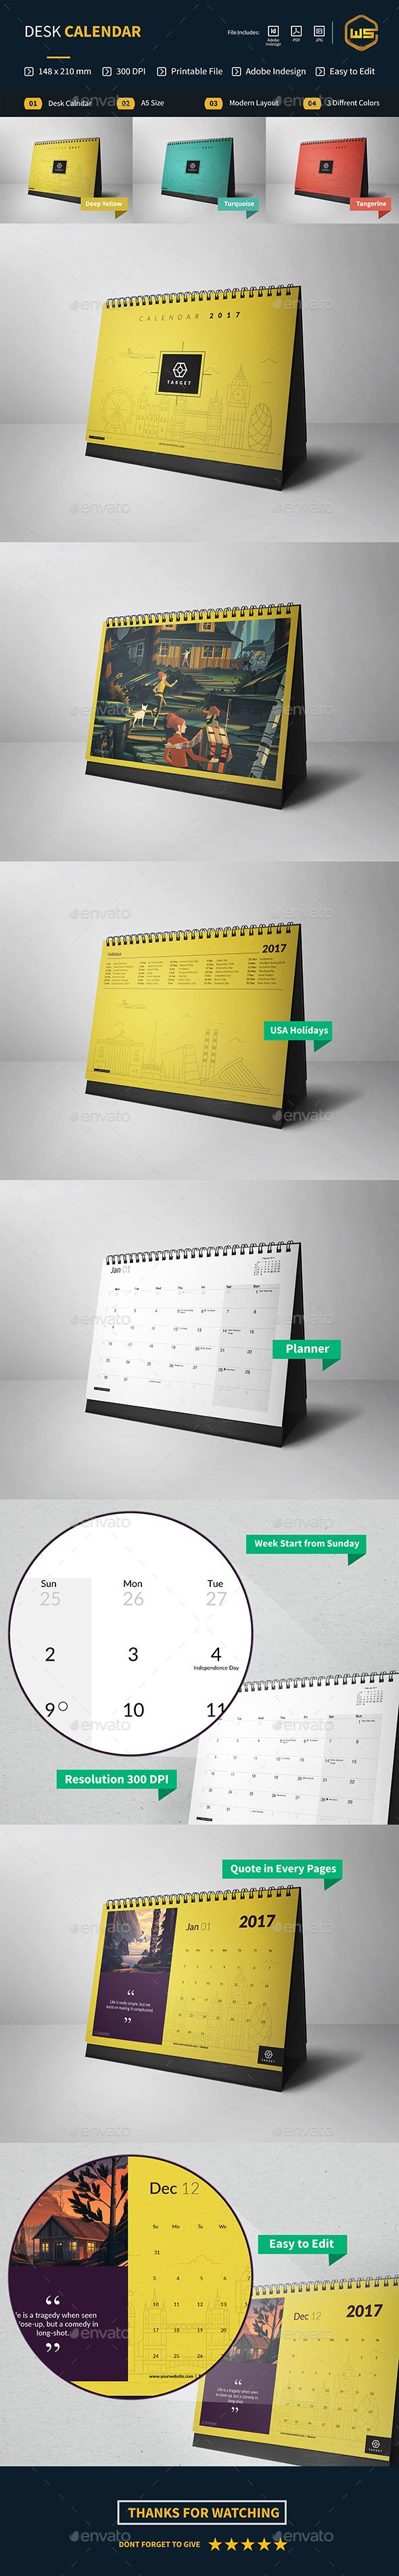 Desk Calendar — InDesign INDD #stationery #dates • Download ➝ https://graphicriver.net/item/desk-calendar/18809267?ref=pxcr